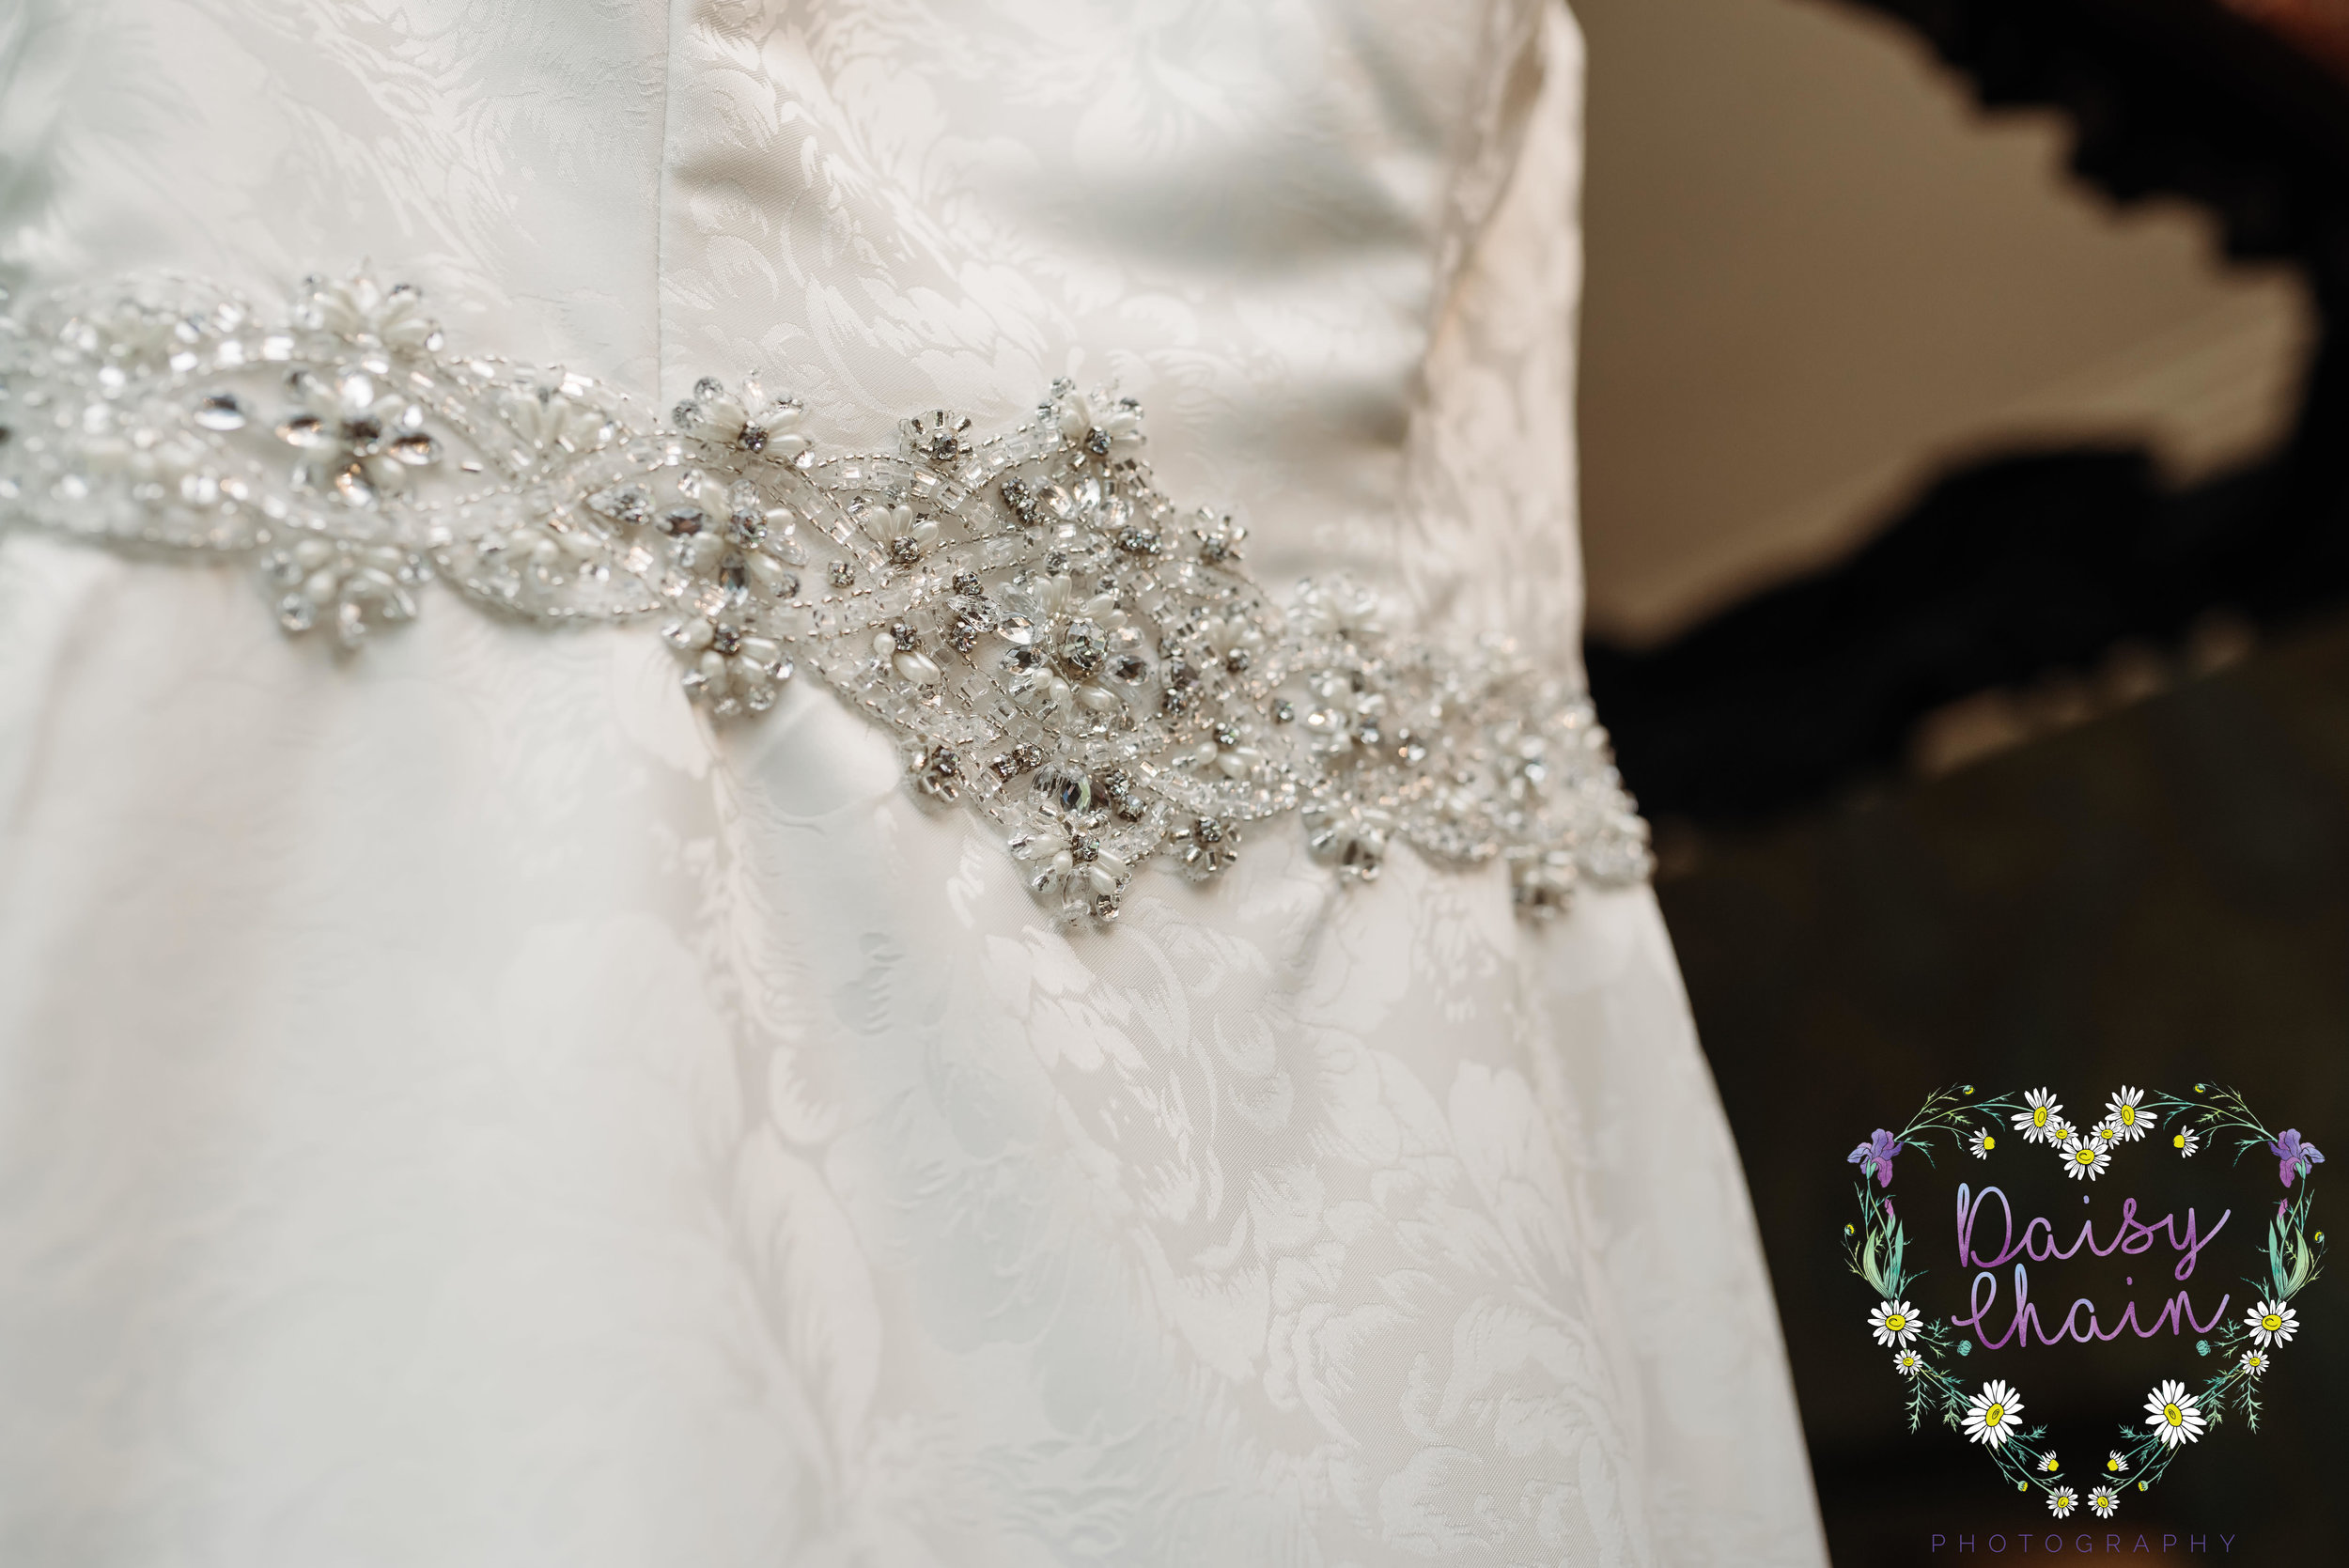 Close up wedding dress detail